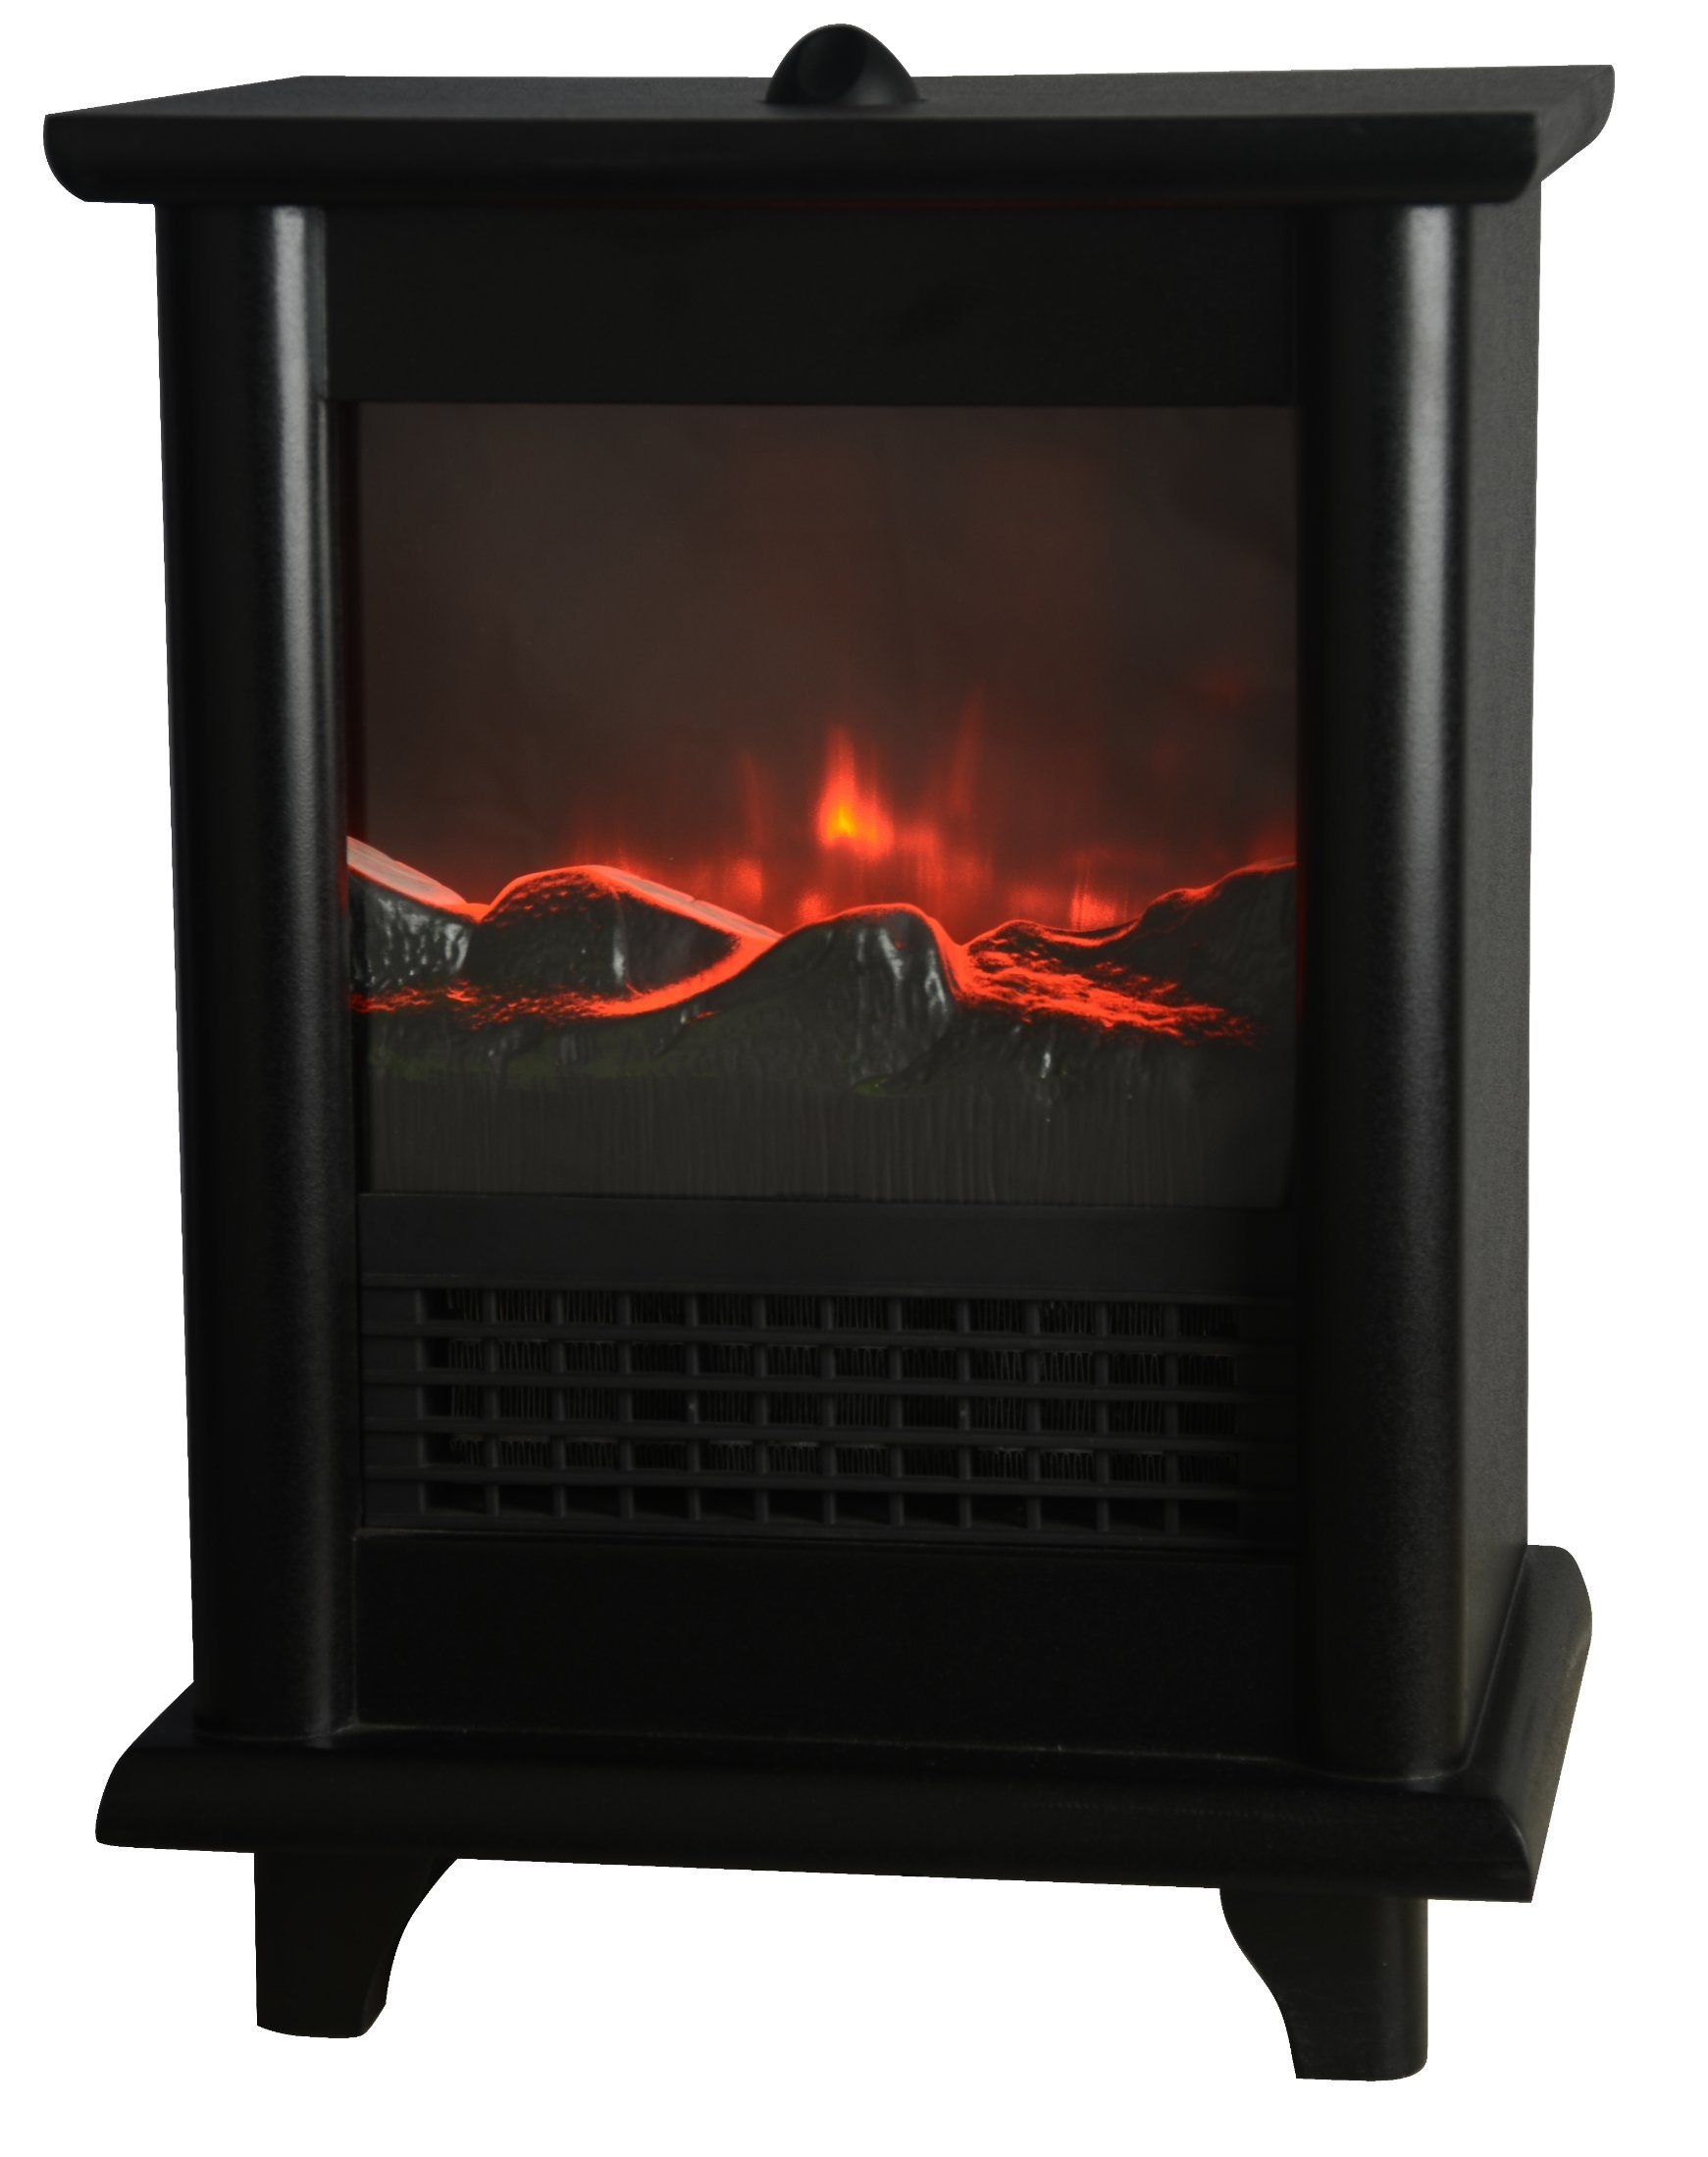 Home Appliance Electric Fireplace with Wooden Frame